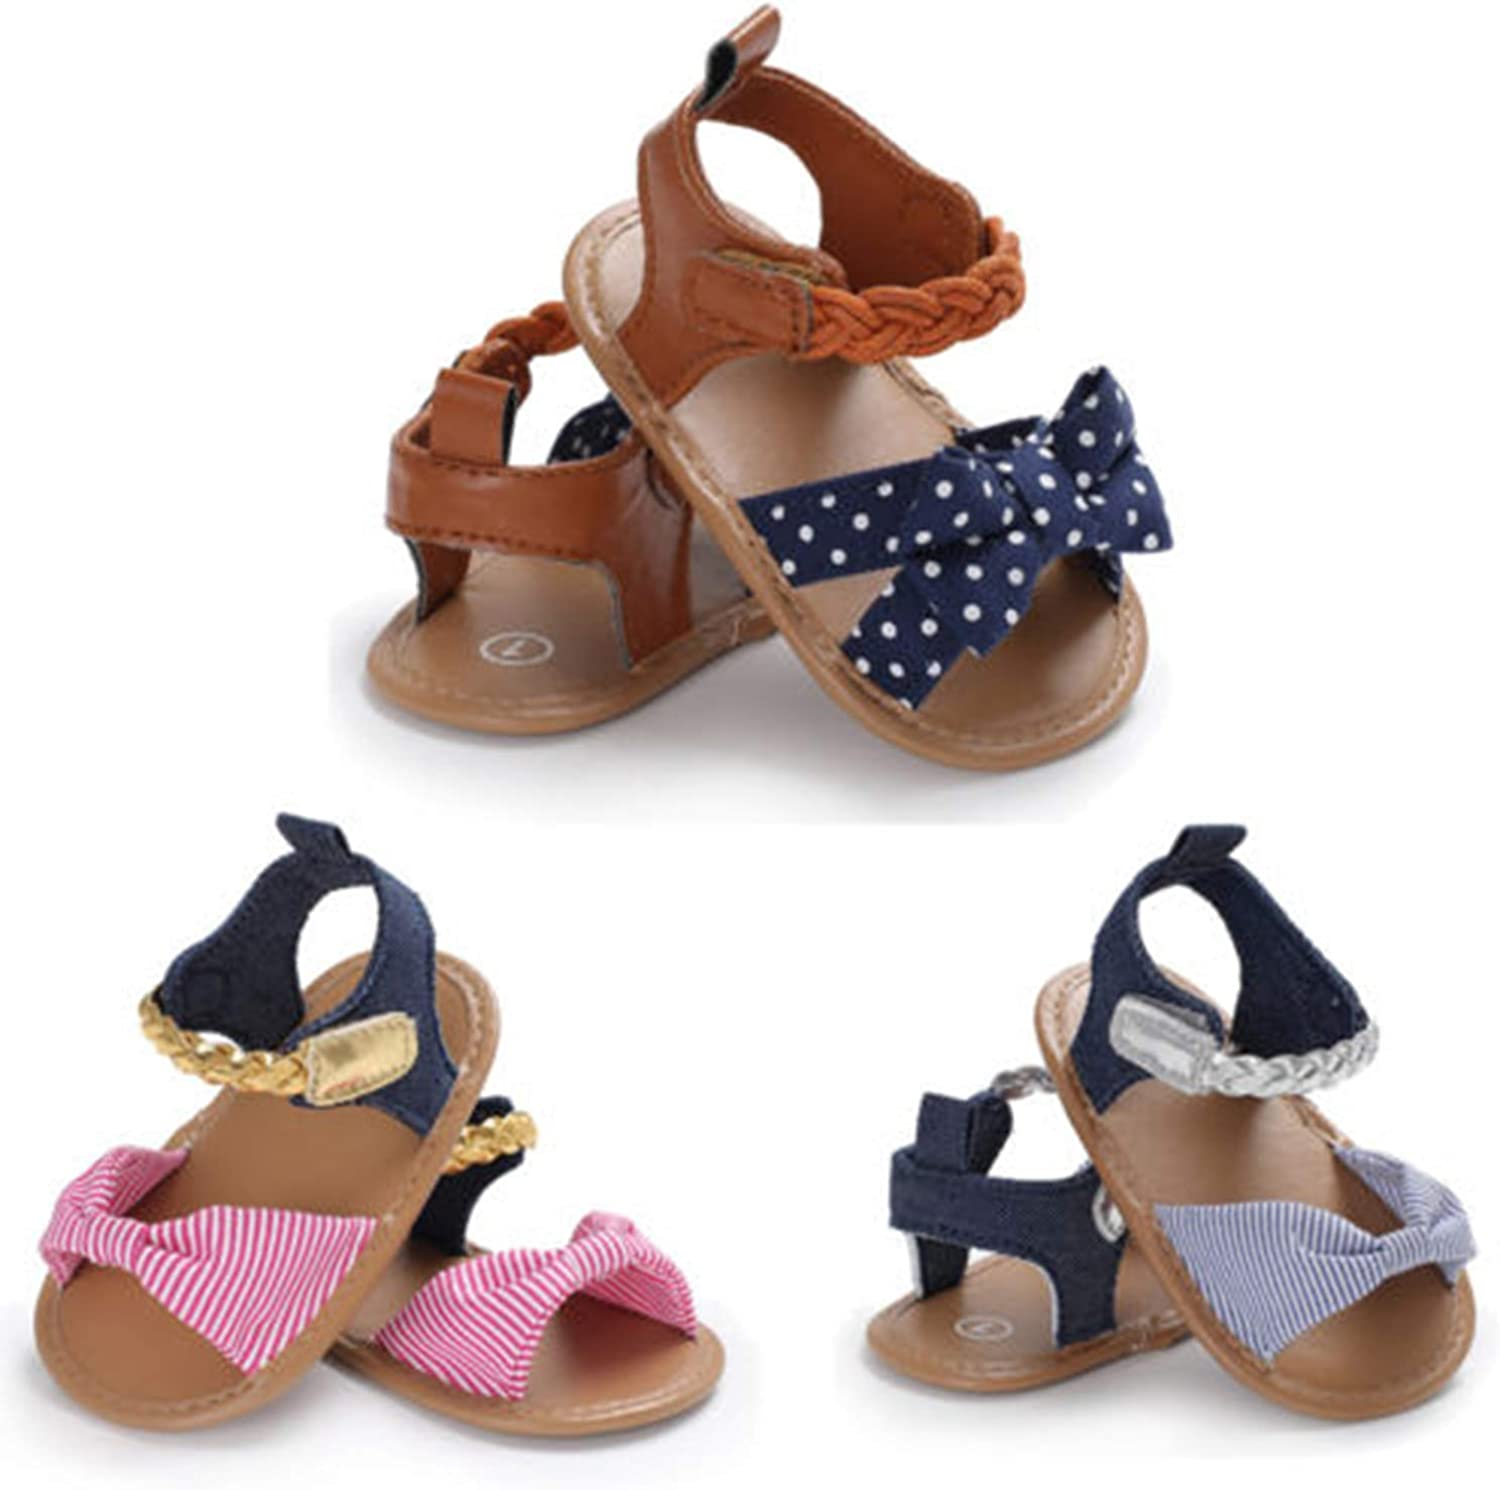 5 Colors Styles I Love Baby Toddler Girl Bowknot Sandals Soft Sole Anti-Slip Crib Shoes Prewalker 0-18M